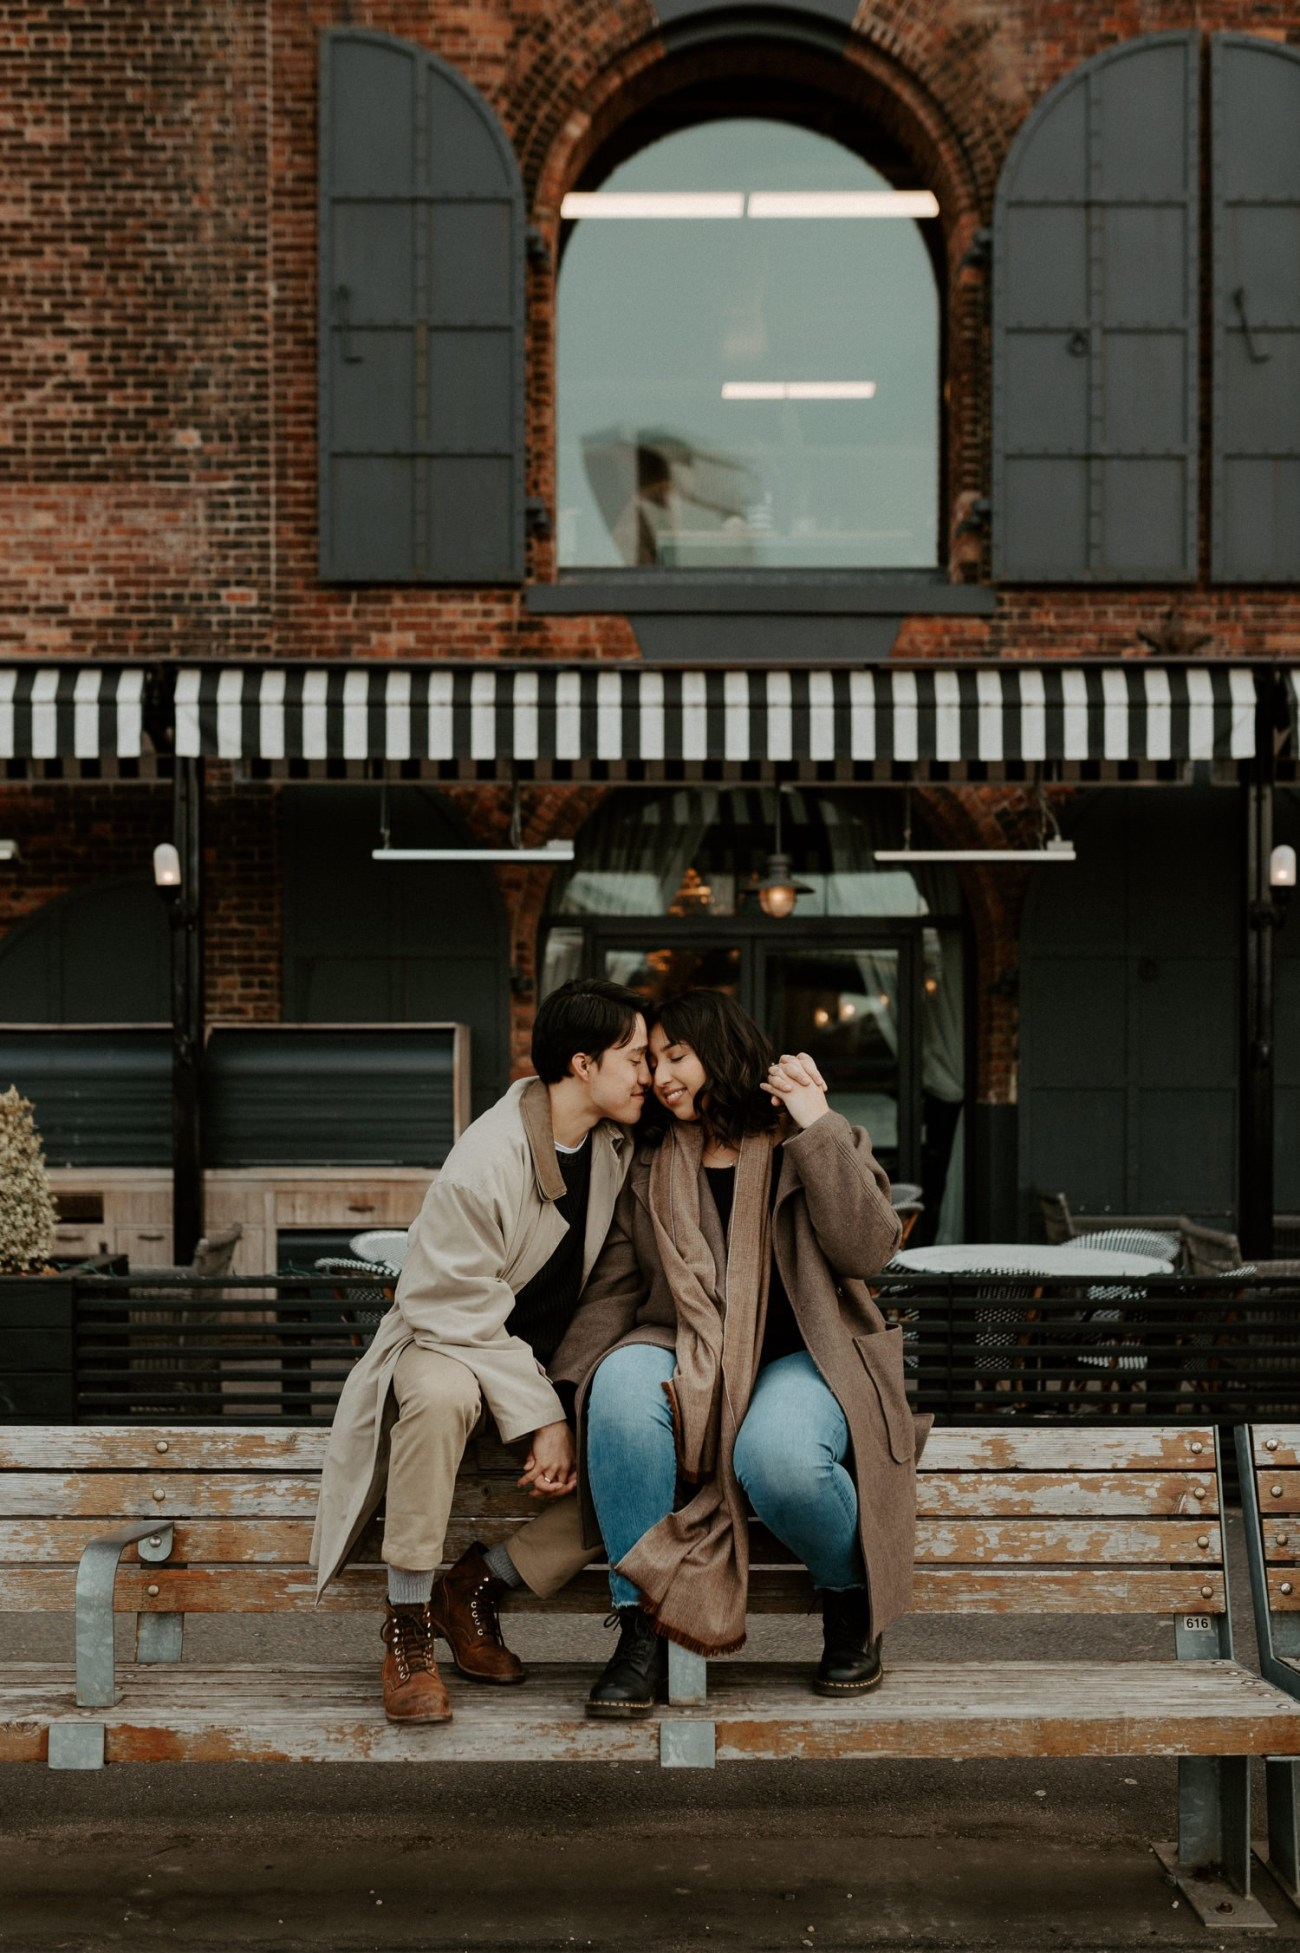 Dumbo Brooklyn Engagement Photos New York City Couple Session New York Wedding Photographer NYC Best Engagement Photos Location Anais Possamai Photography 26